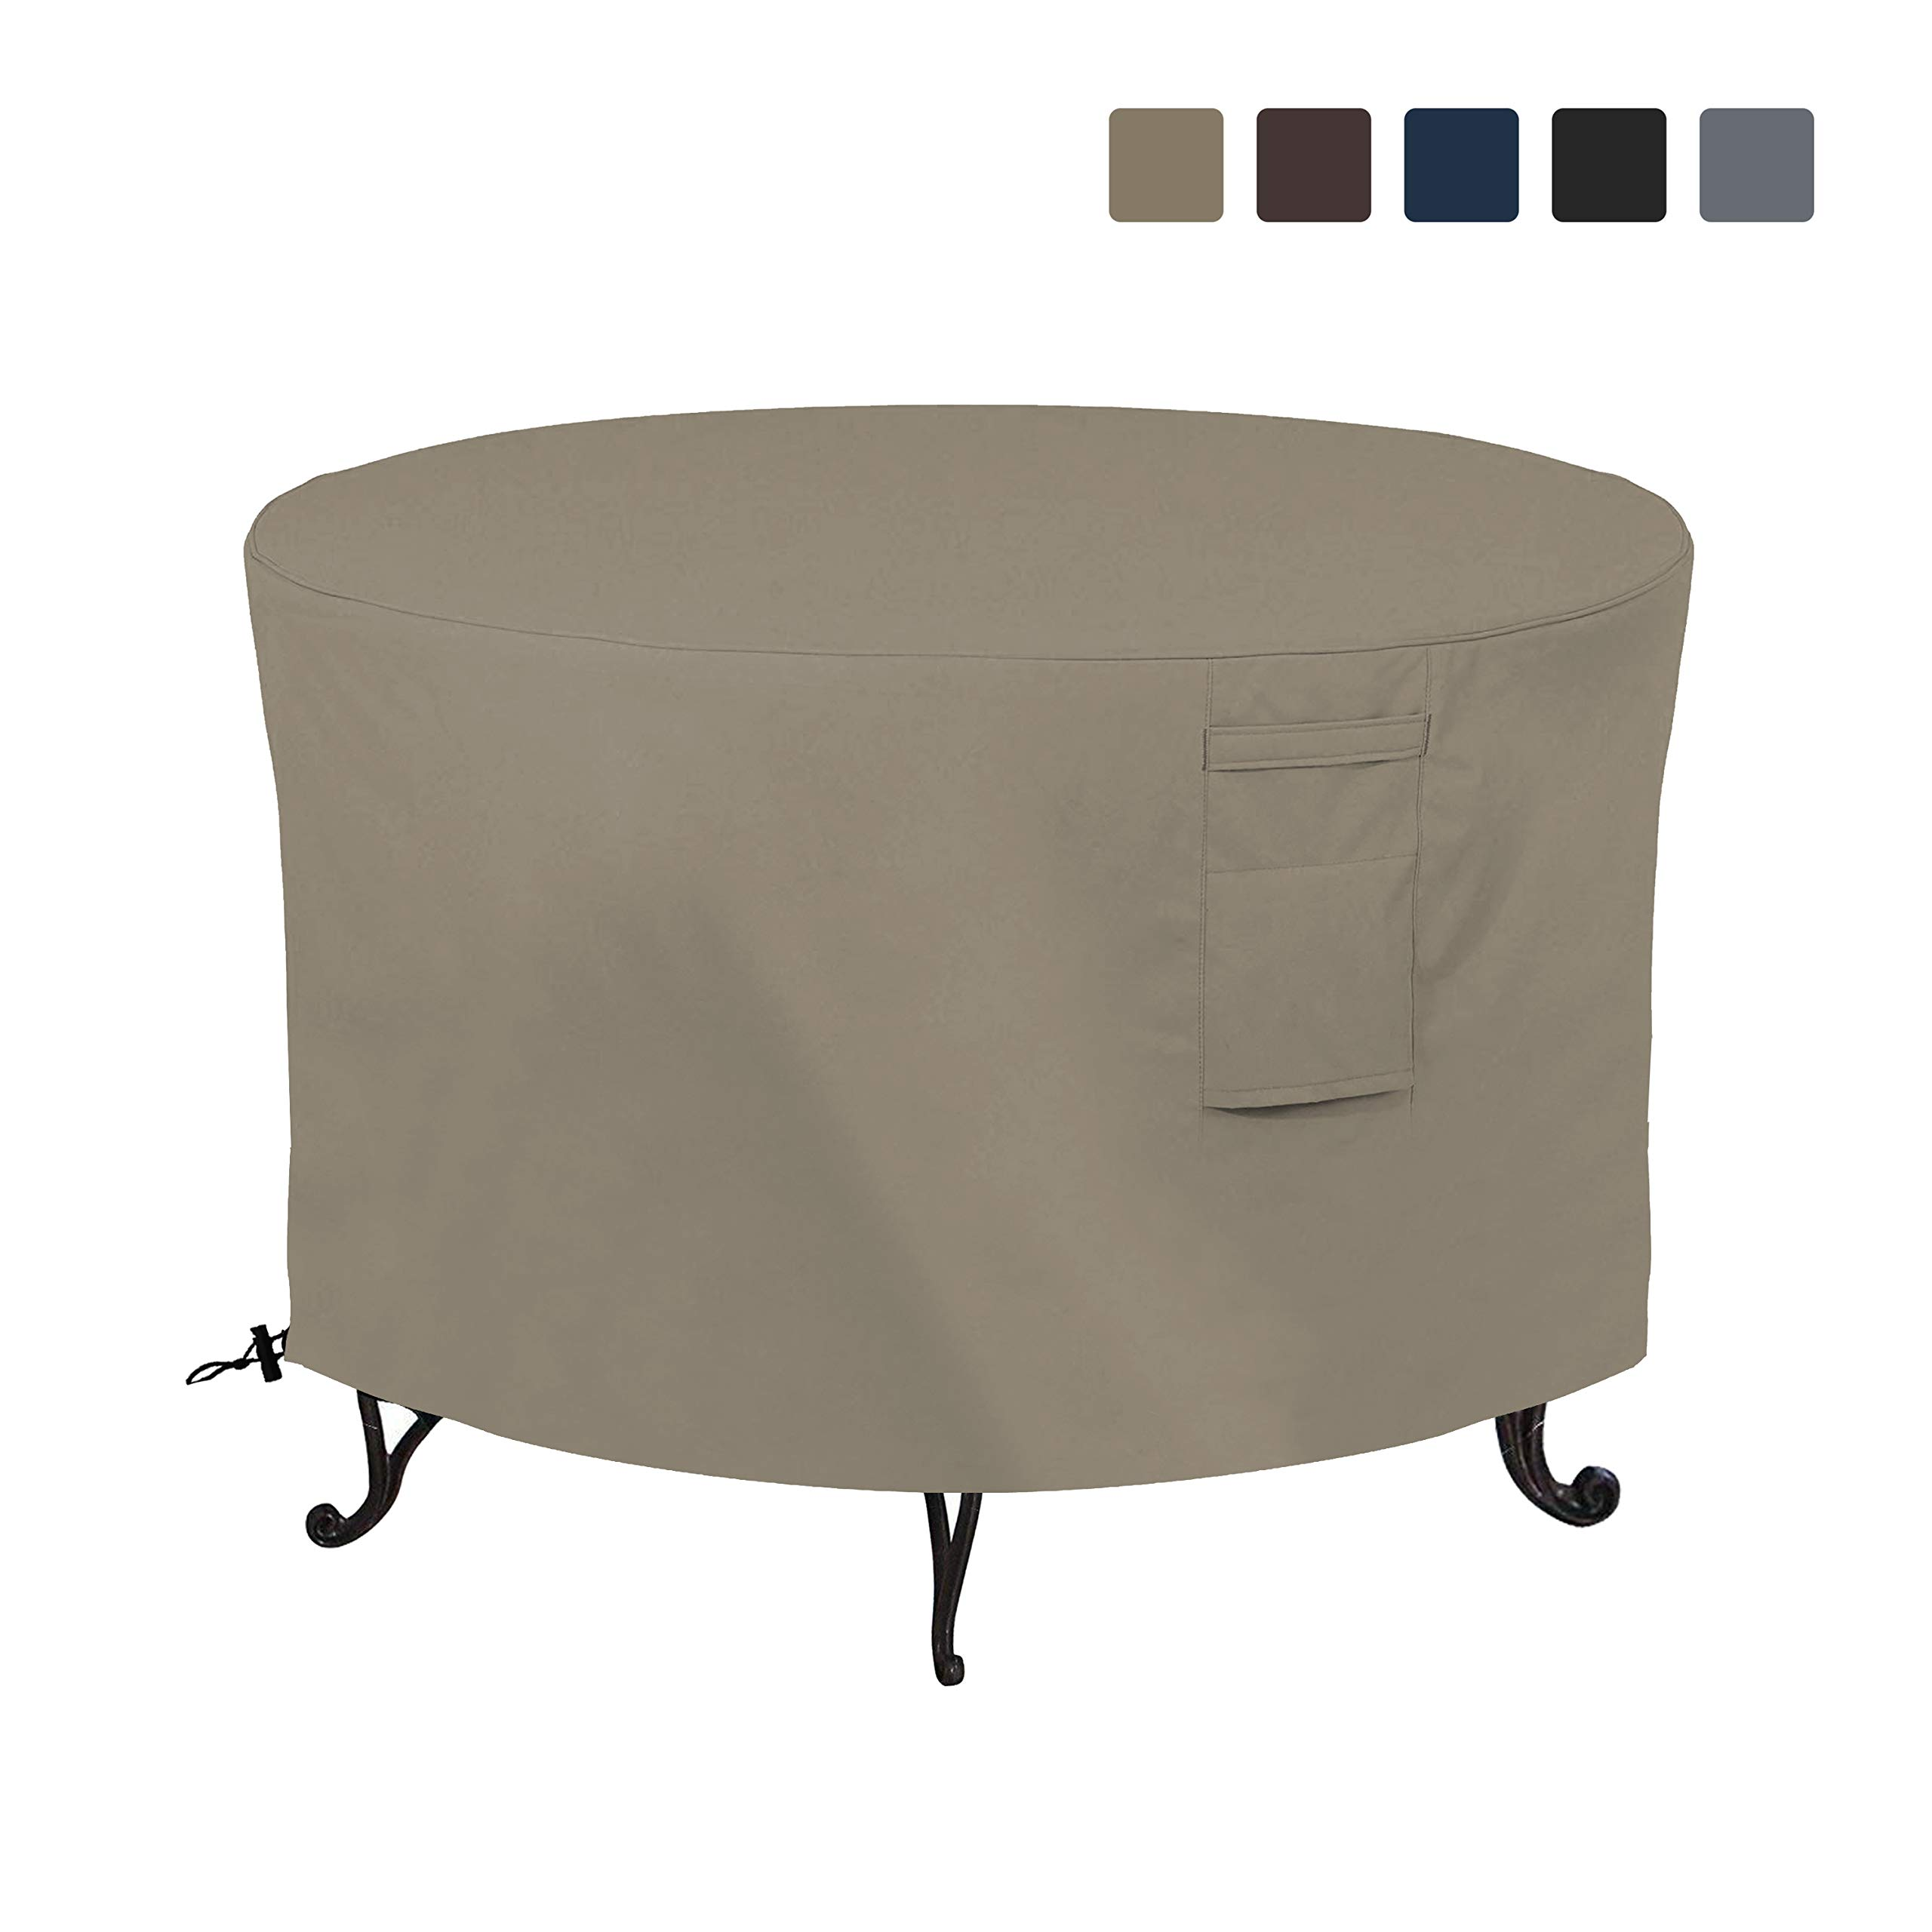 Firepit Covers Round 12 Oz Waterproof - 100% UV & Weather Resistant Full Coverage Custom Size Firepit Cover with Air Pockets & Drawstring for Snug Fit (48 X 18 Inch, Tan - Beige) by COVERS & ALL